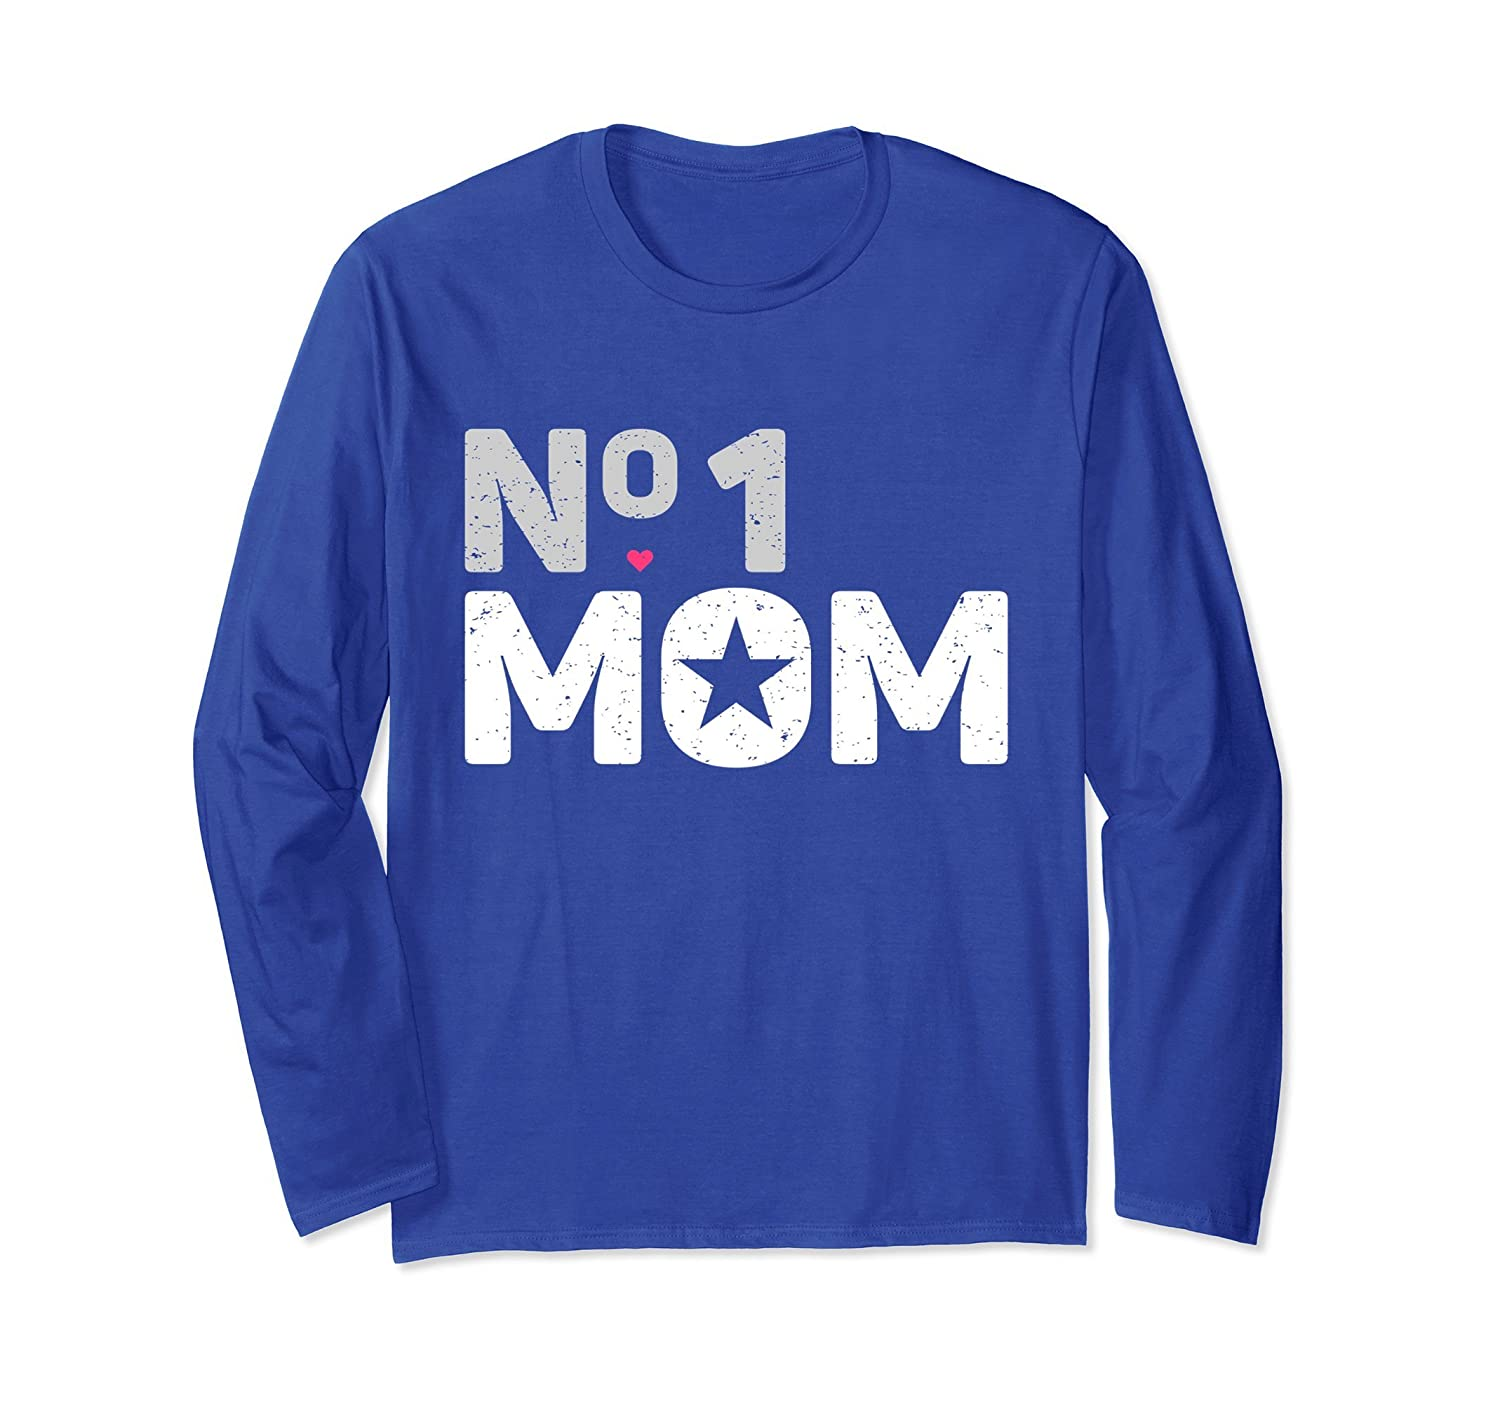 7c566f4d852d Basketball Mama Long Sleeve Shirt Cute Baller Mom Mother Tee-ah my ...